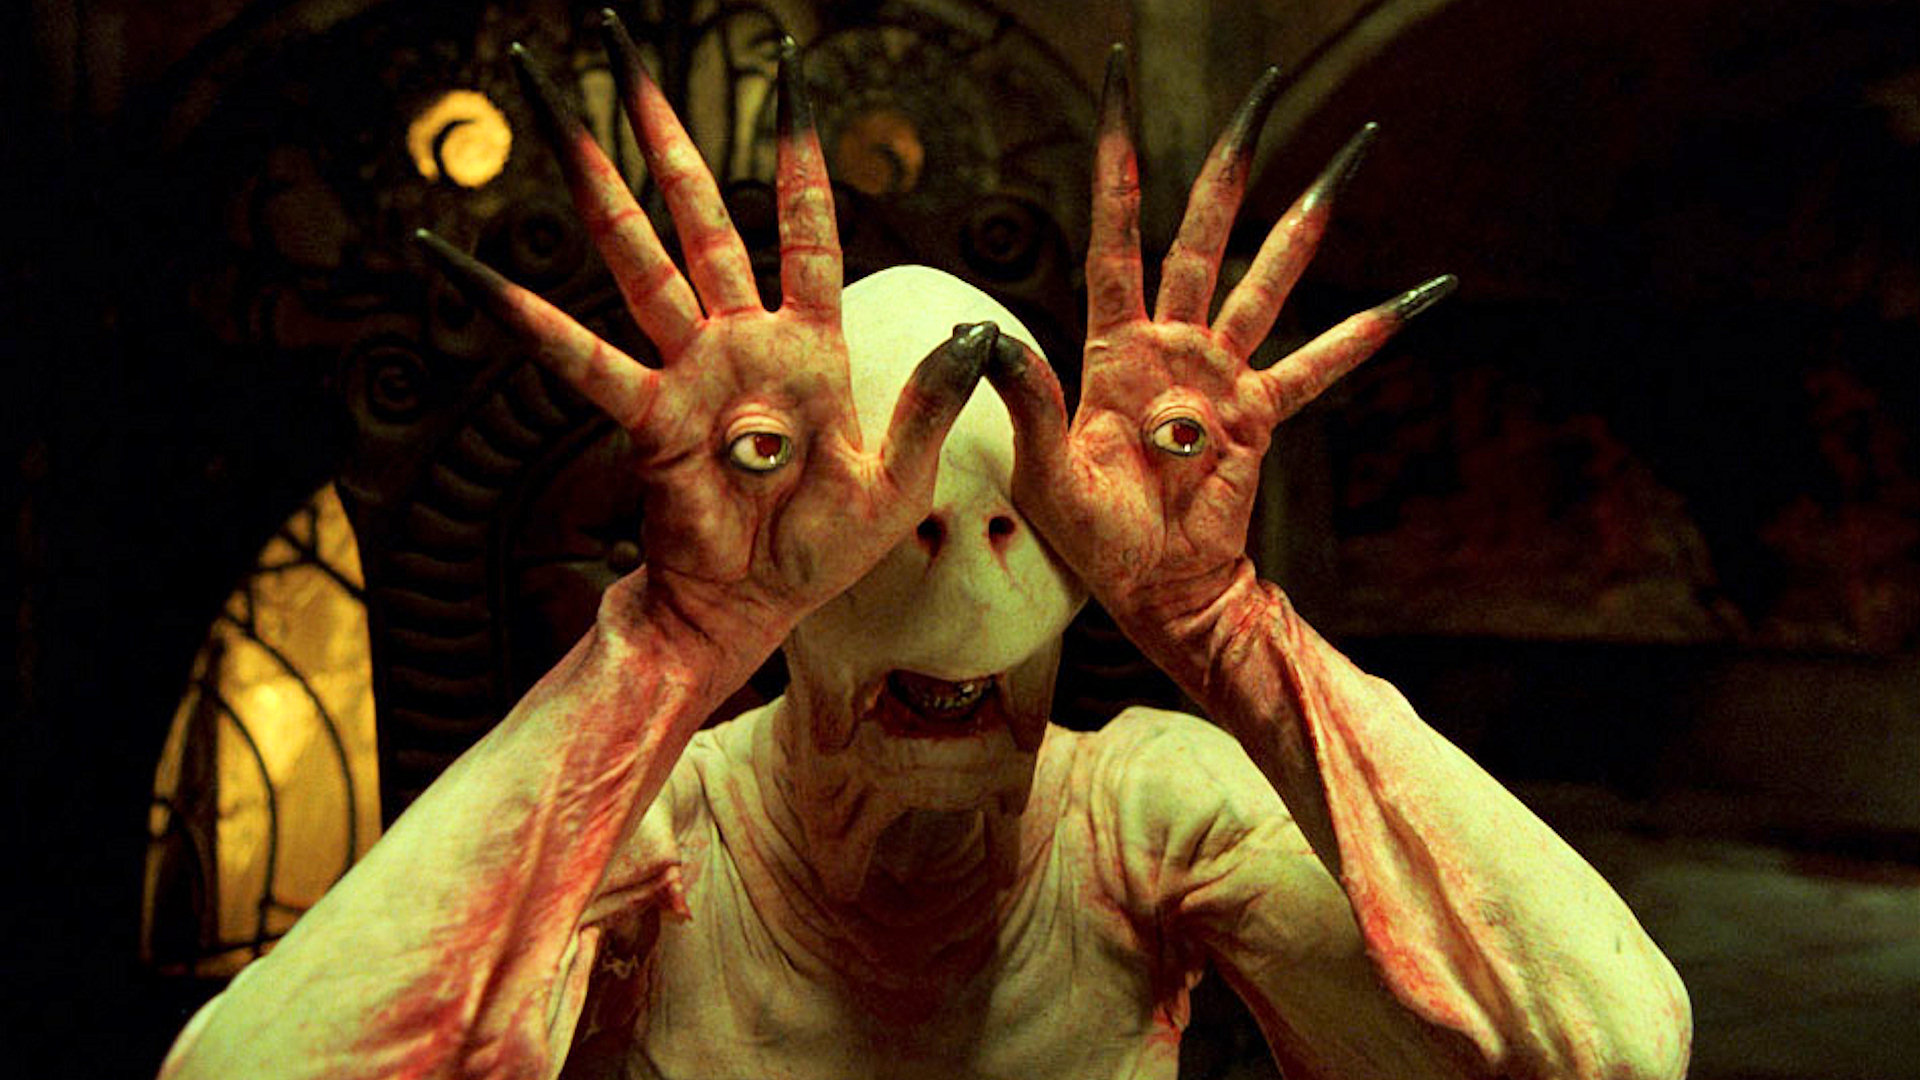 17. Pans Labyrinth (Guillermo Del Toro)